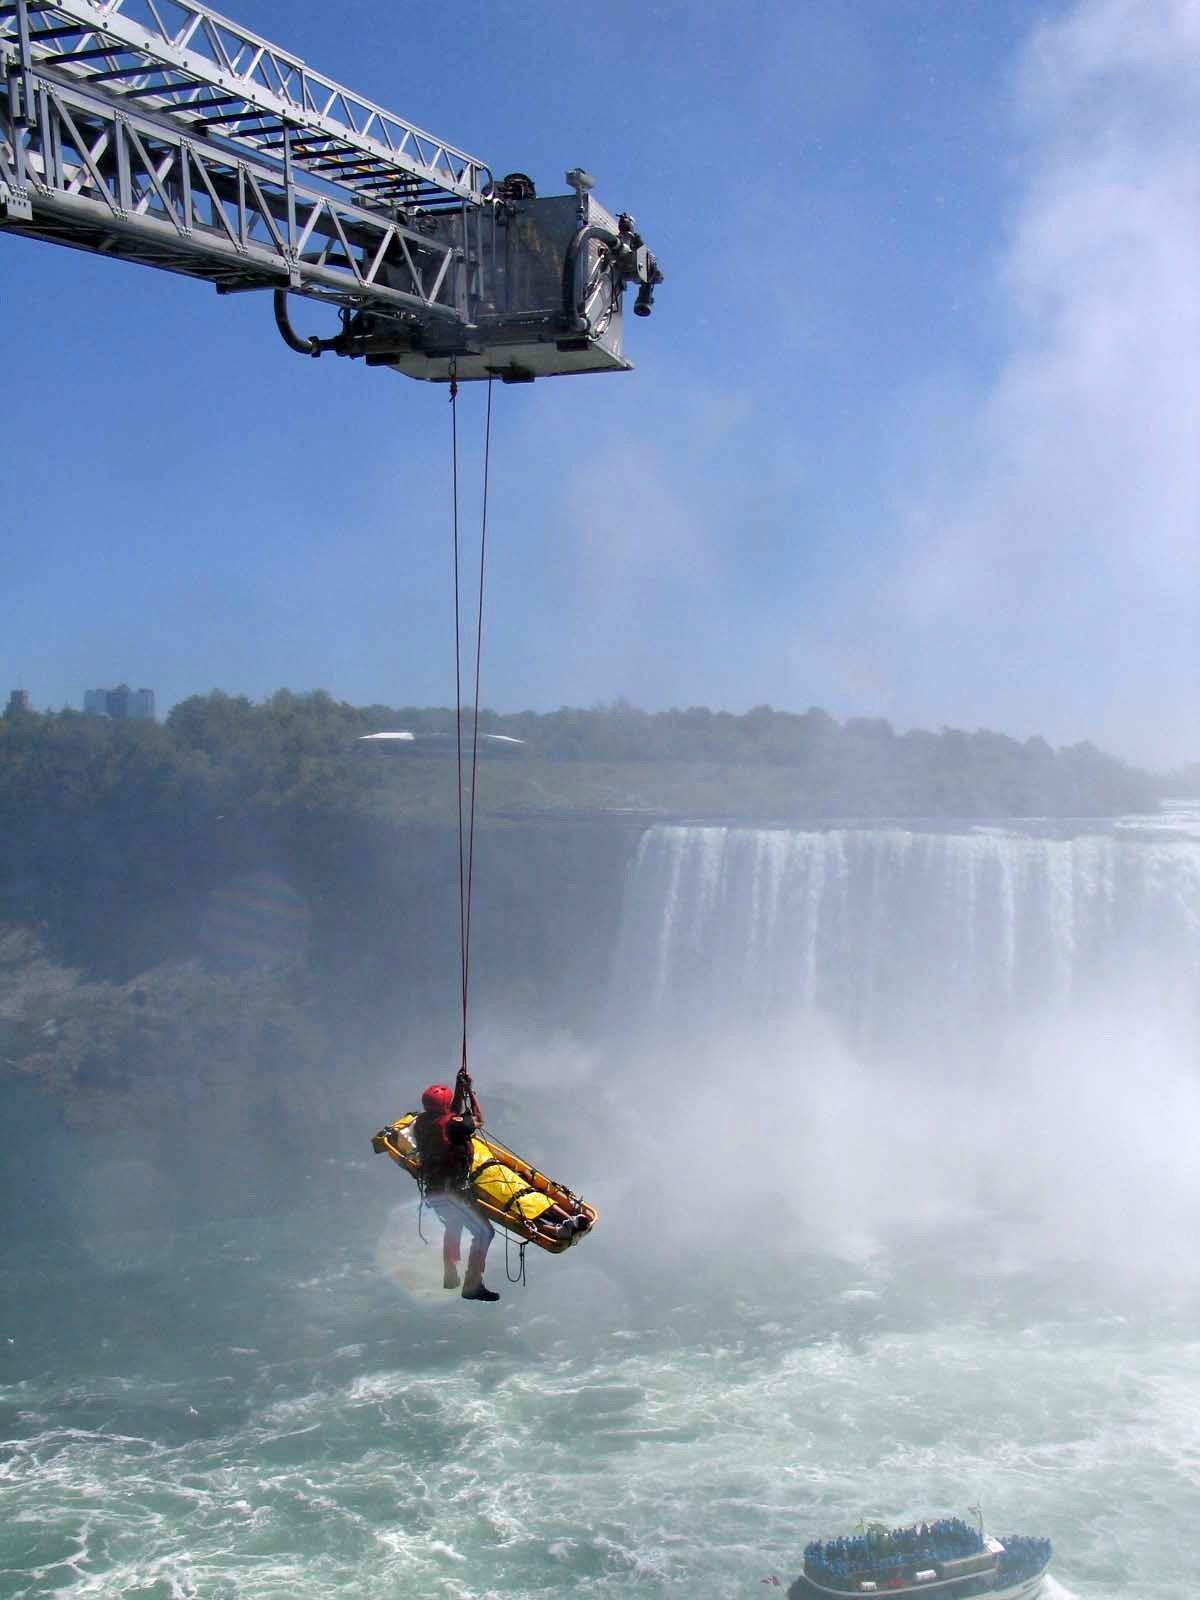 Man in stable condition after plunge over Niagara Falls